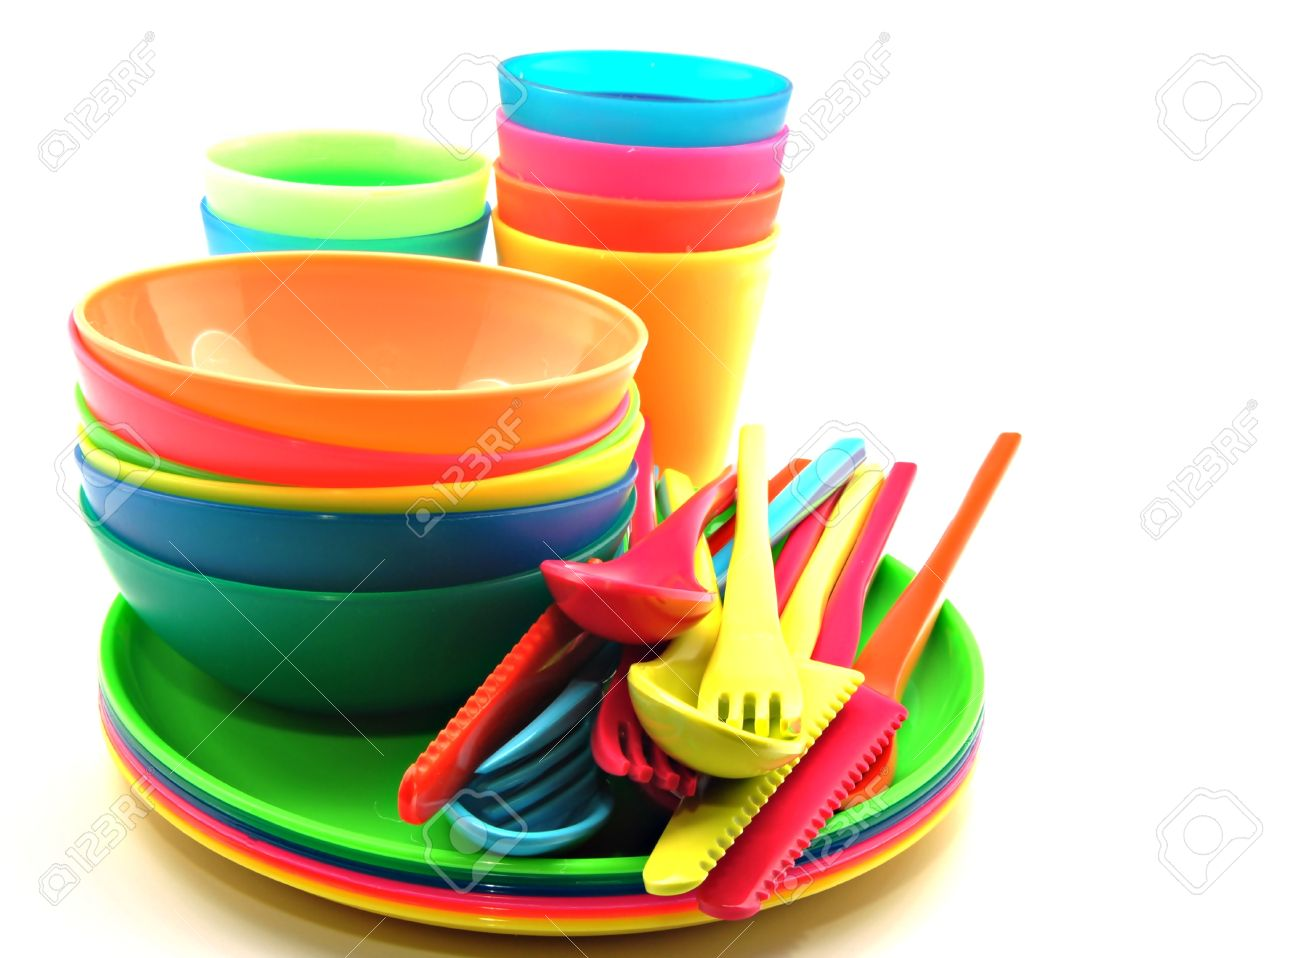 Plastic tableware consisting of cutlery plates and bowls Stock Photo - 12267674  sc 1 st  123RF.com & Plastic Tableware Consisting Of Cutlery Plates And Bowls Stock ...